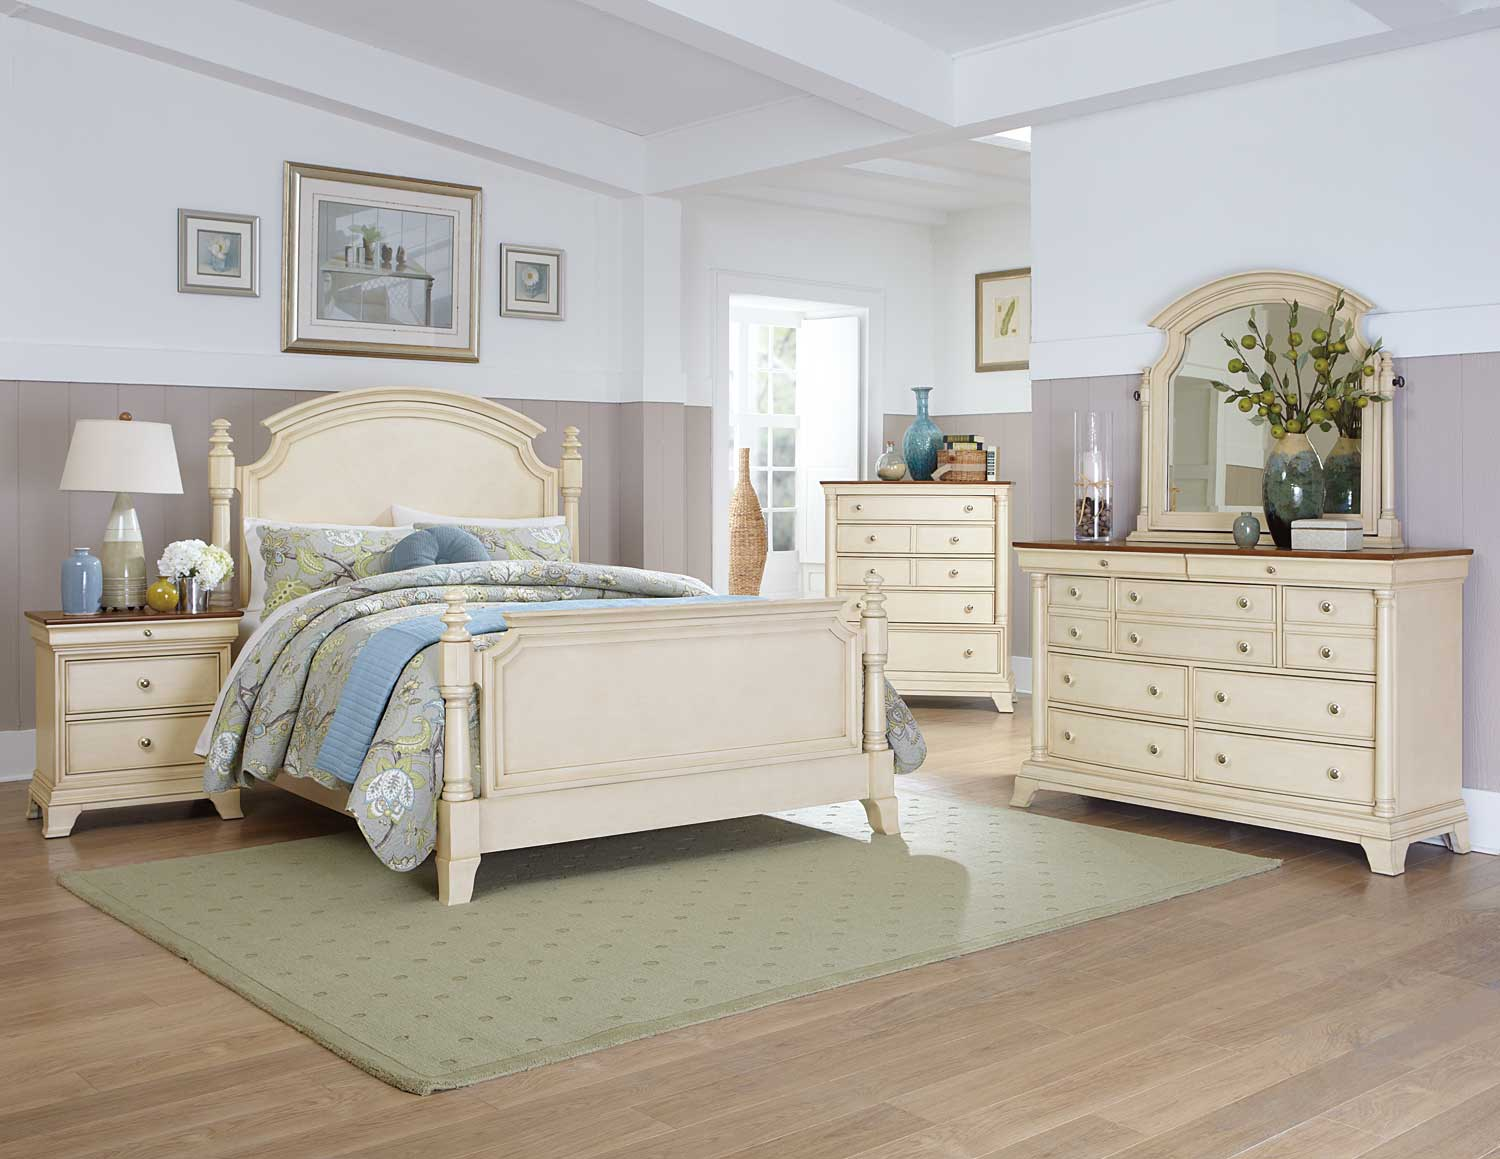 Homelegance inglewood ii bedroom set white b1402w bed - White vintage bedroom furniture sets ...